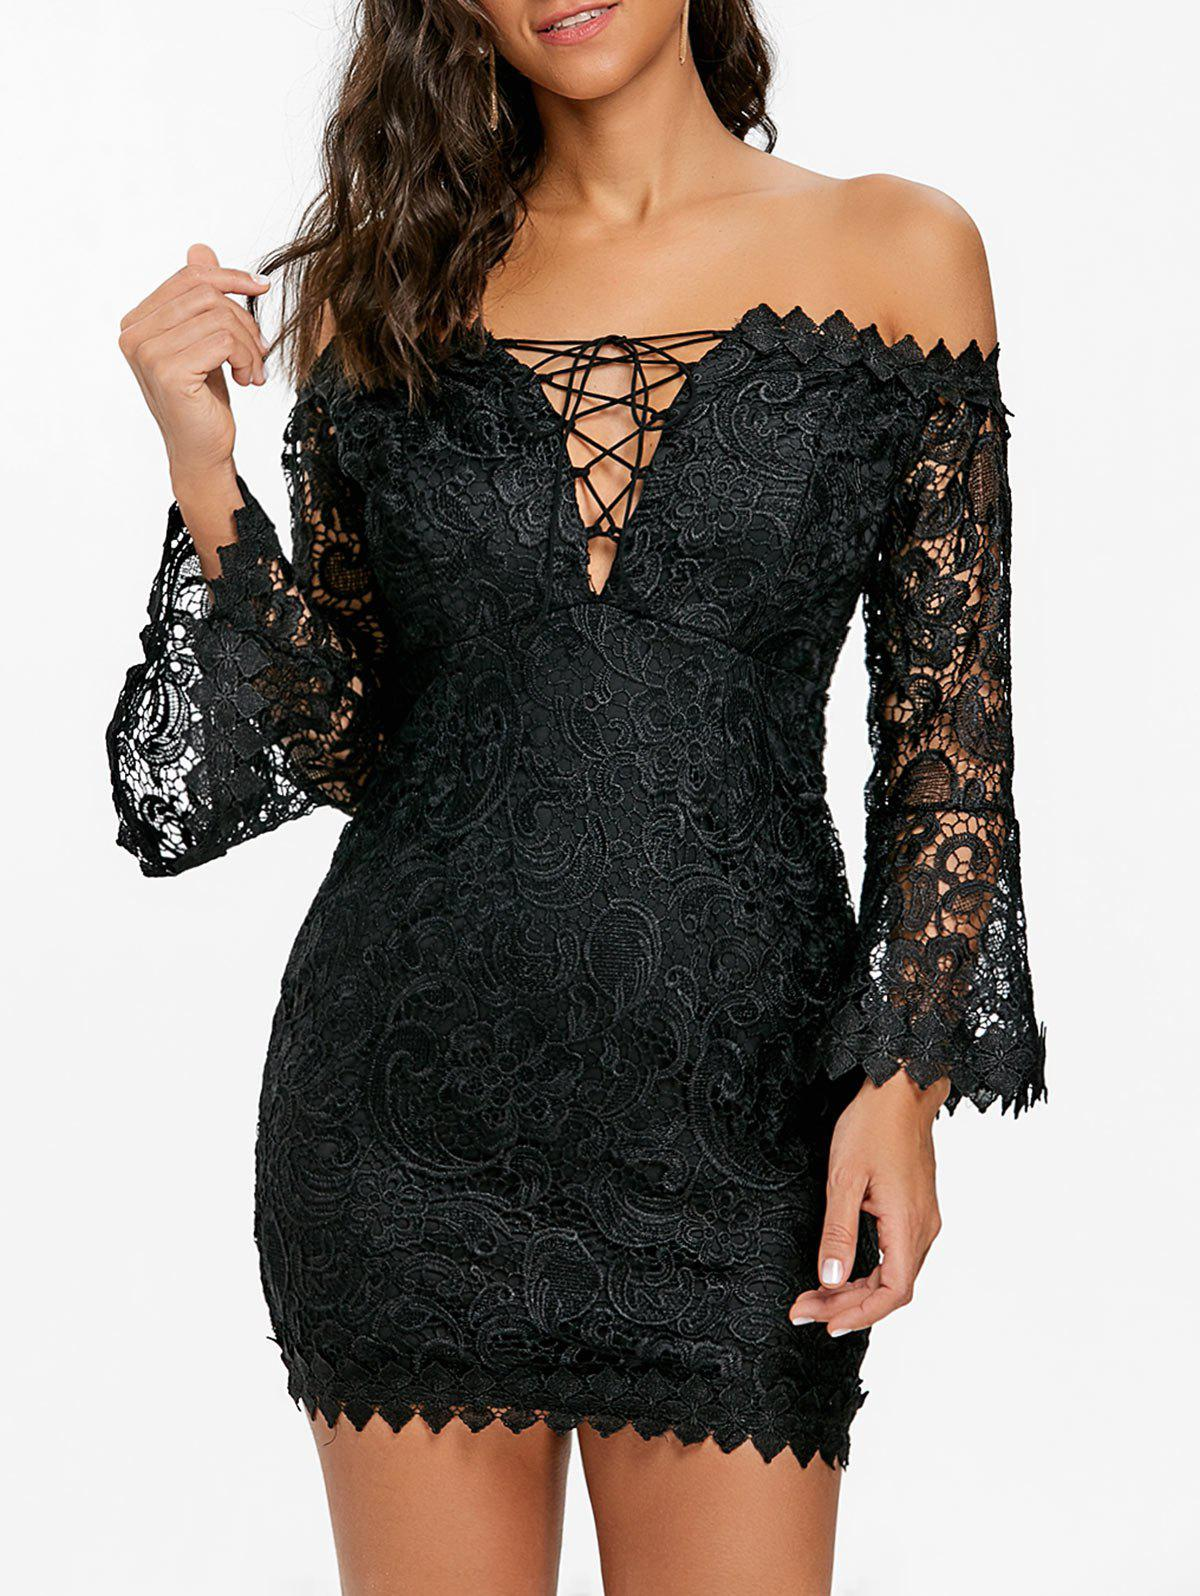 Lace Off The Shoulder Mini Dress - BLACK S